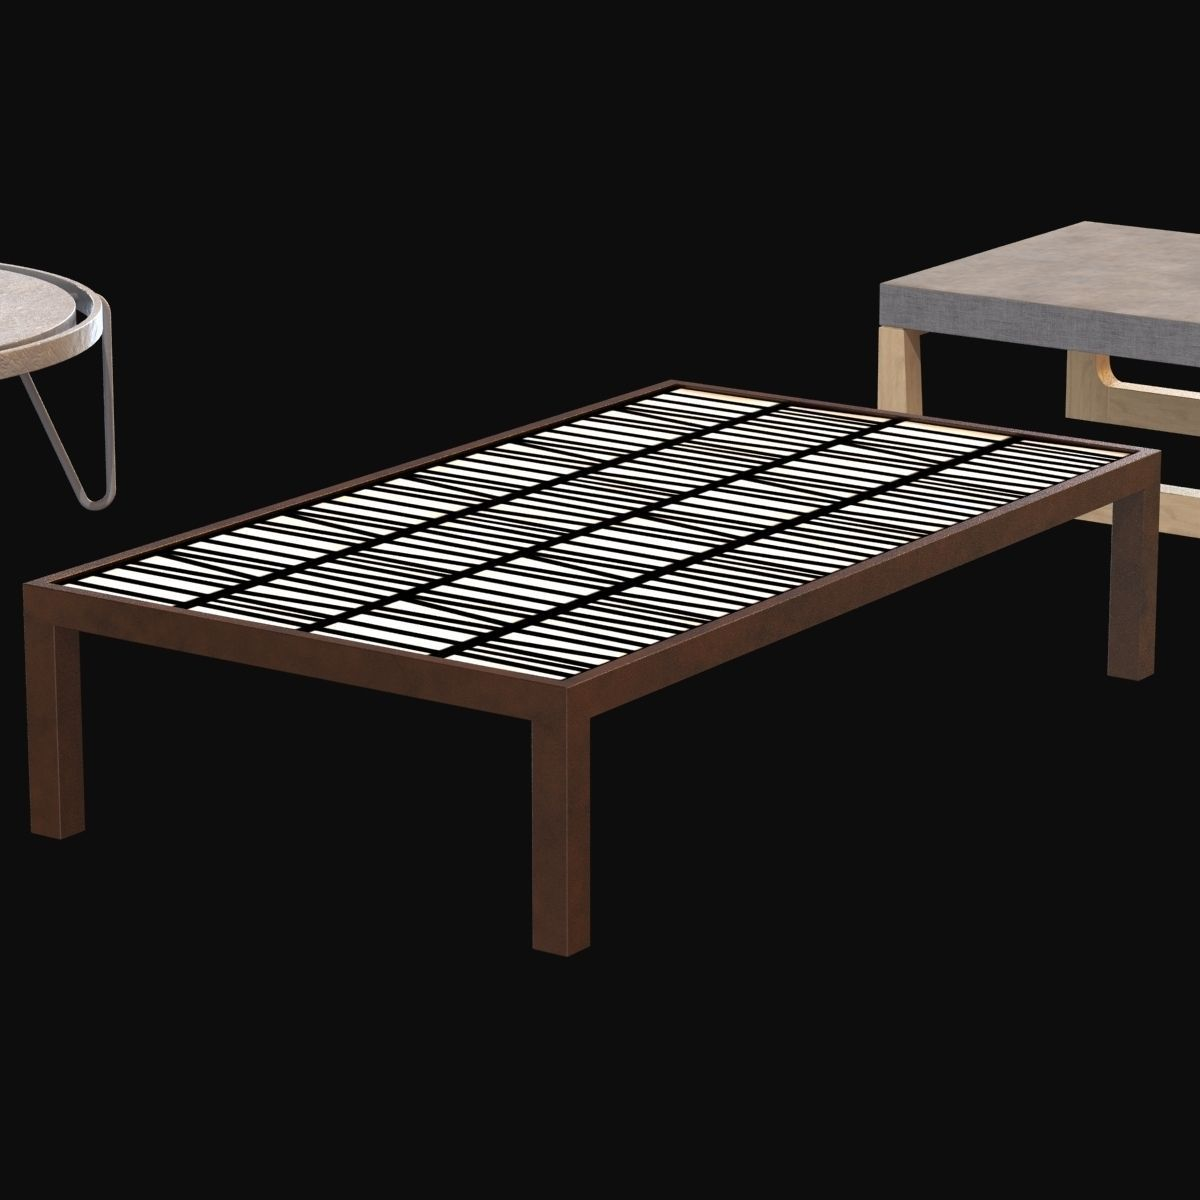 Max A Table Tables Collection 2 3d Model Max Obj 3ds Fbx Cgtrader